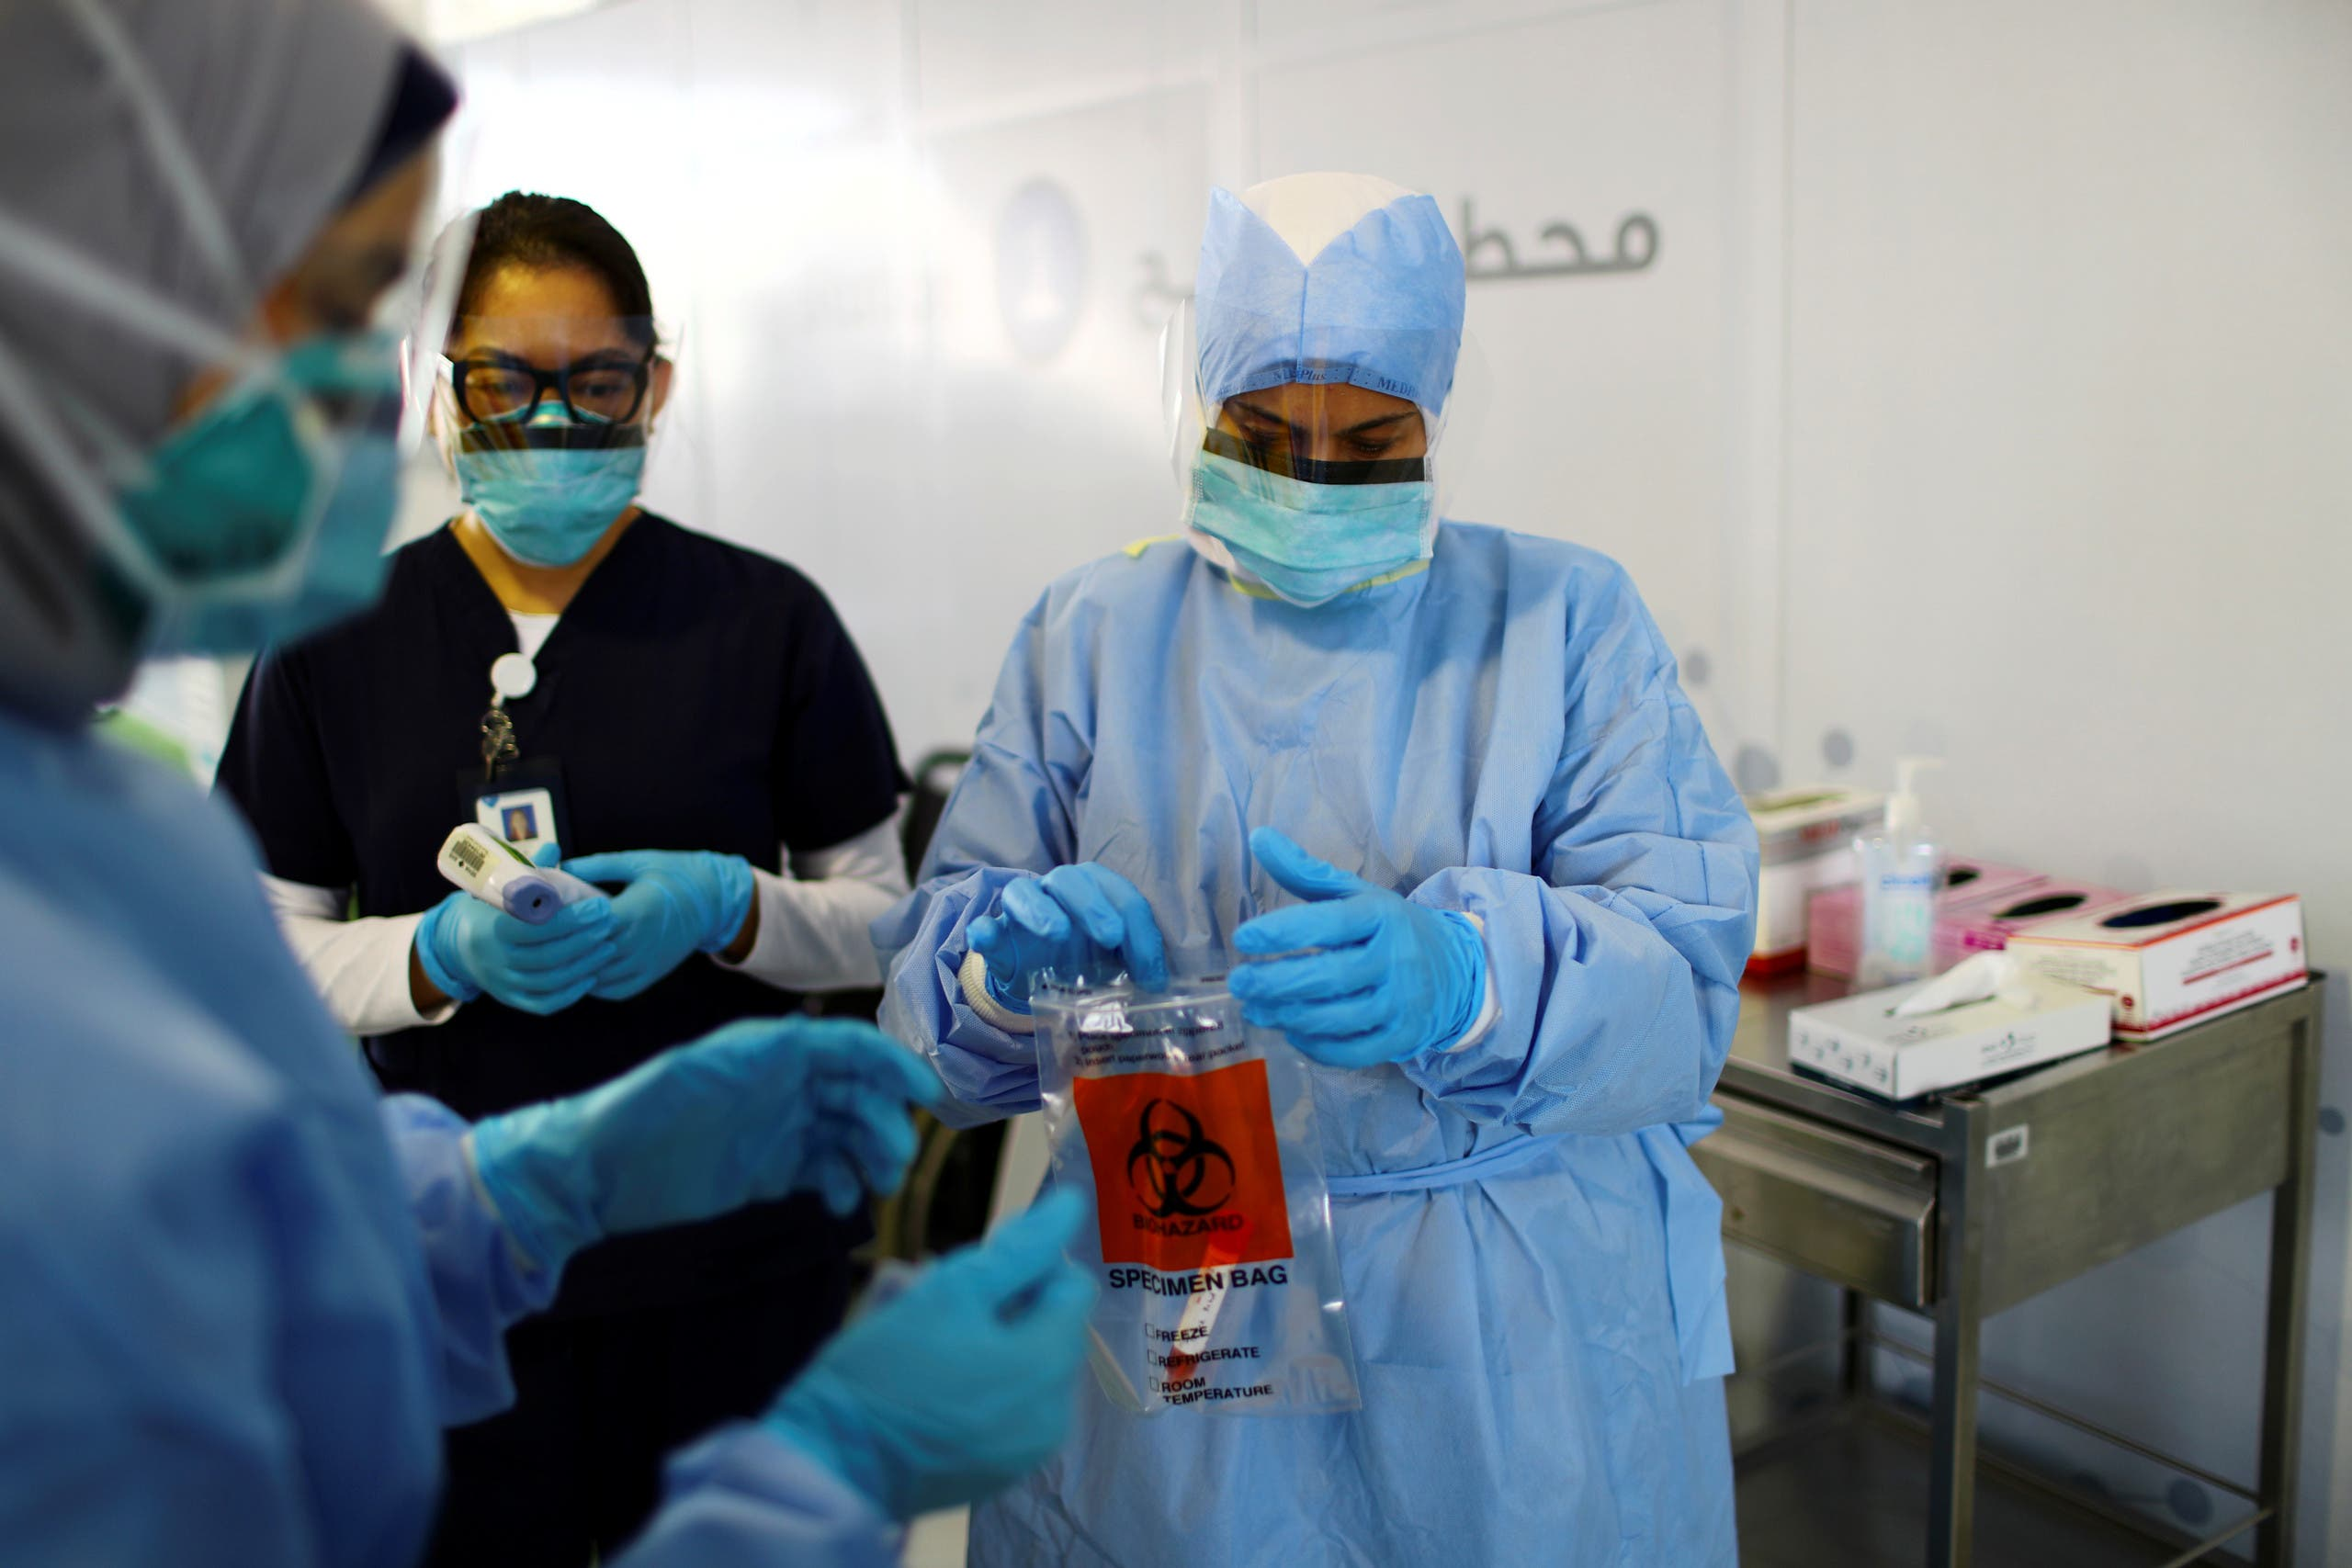 A member of medical staff wearing a protective face mask and gloves carries a swab tested during drive-thru coronavirus disease testing (COVID-19) at a screening centre in Abu Dhabi, United Arab Emirates March 30, 2020. (Reuters)